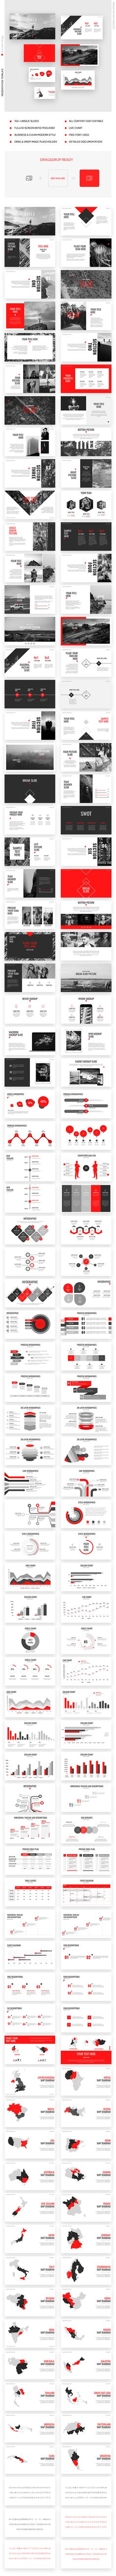 Presentation Template Red Mark Keynote #smart #presentation • Download ➝ https://graphicriver.net/item/presentation-template-red-mark-keynote/21273106?ref=pxcr